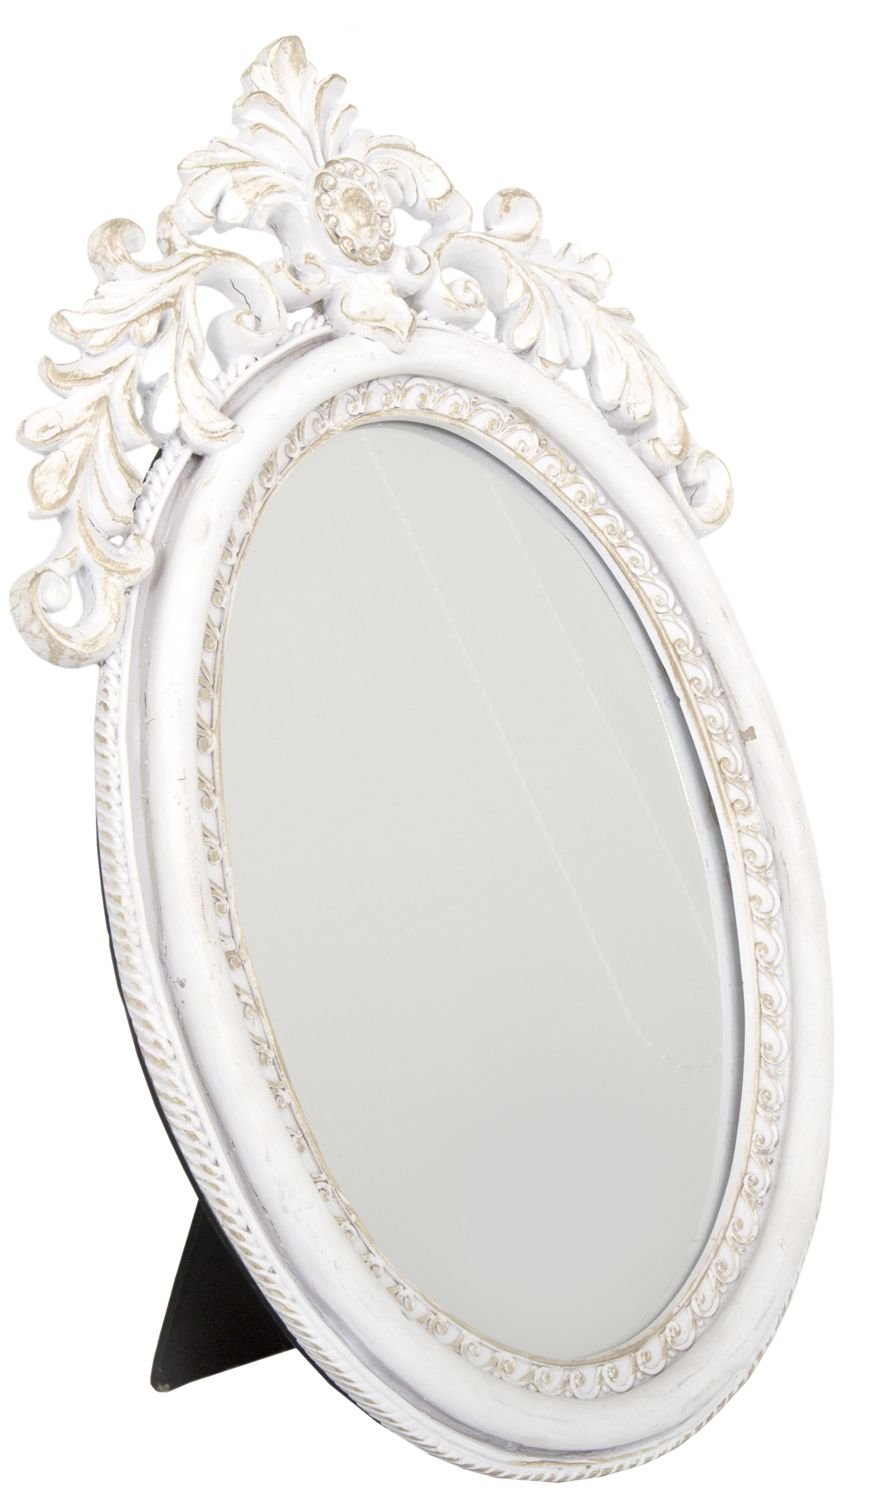 Antique Style Ornate Oval Freestanding Dressing Table Mirror White And  Silver Frame 35Cm X 22Cm